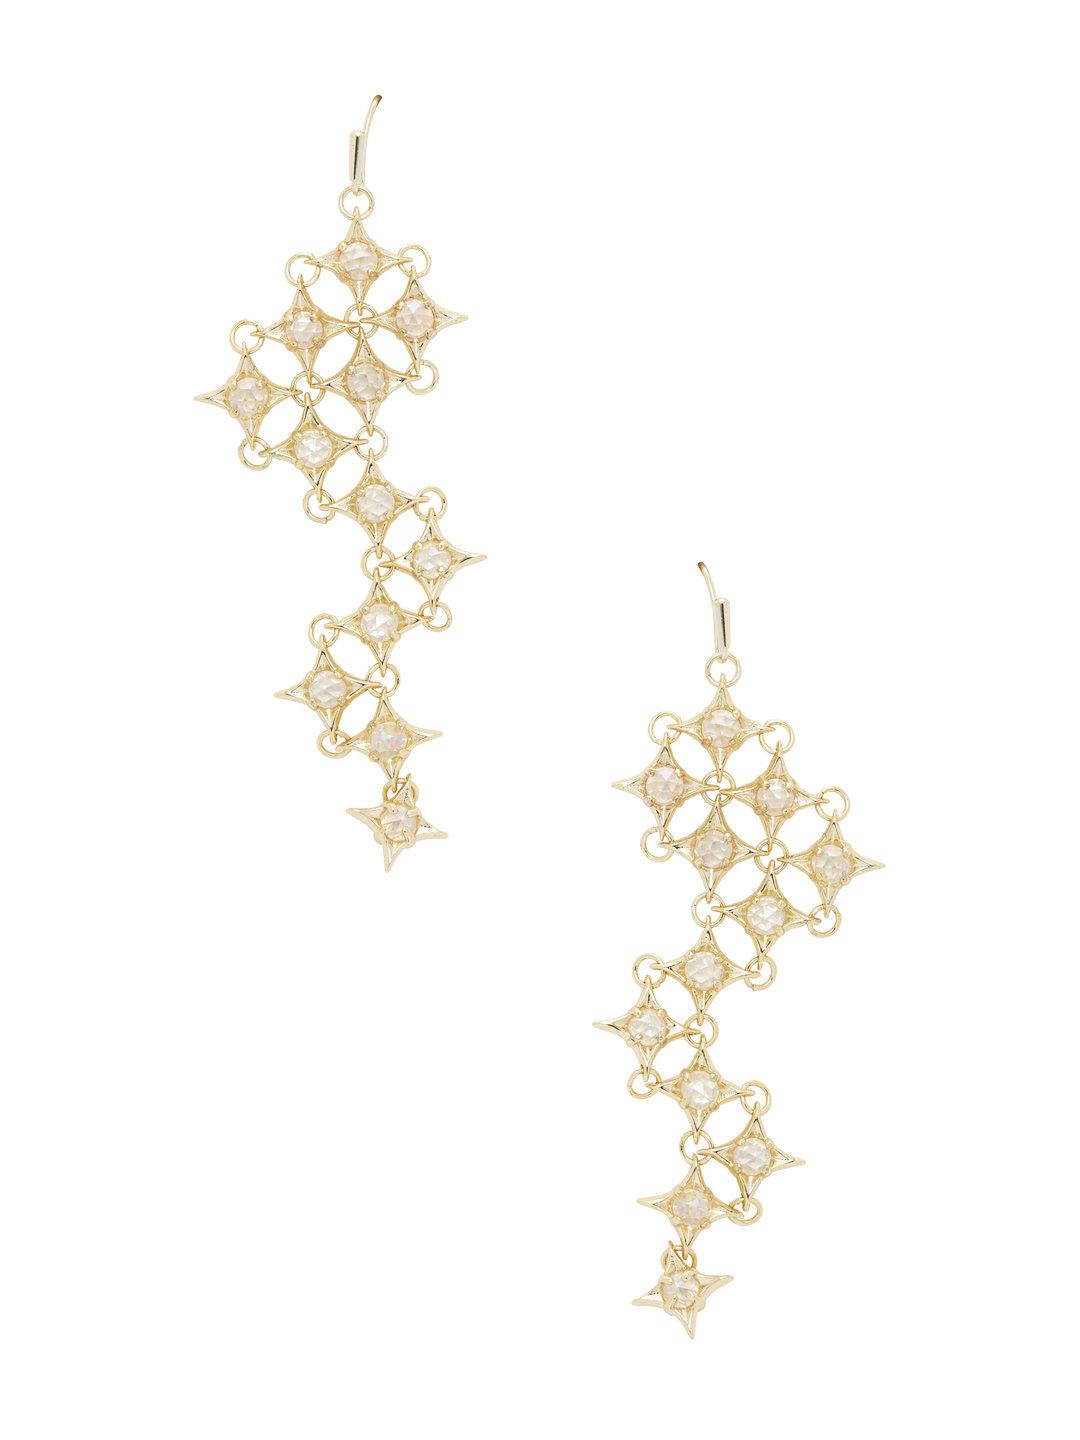 Nova glass chandelier earrings by kendra scott jewelry at gilt nova glass chandelier earrings by kendra scott jewelry at gilt arubaitofo Images